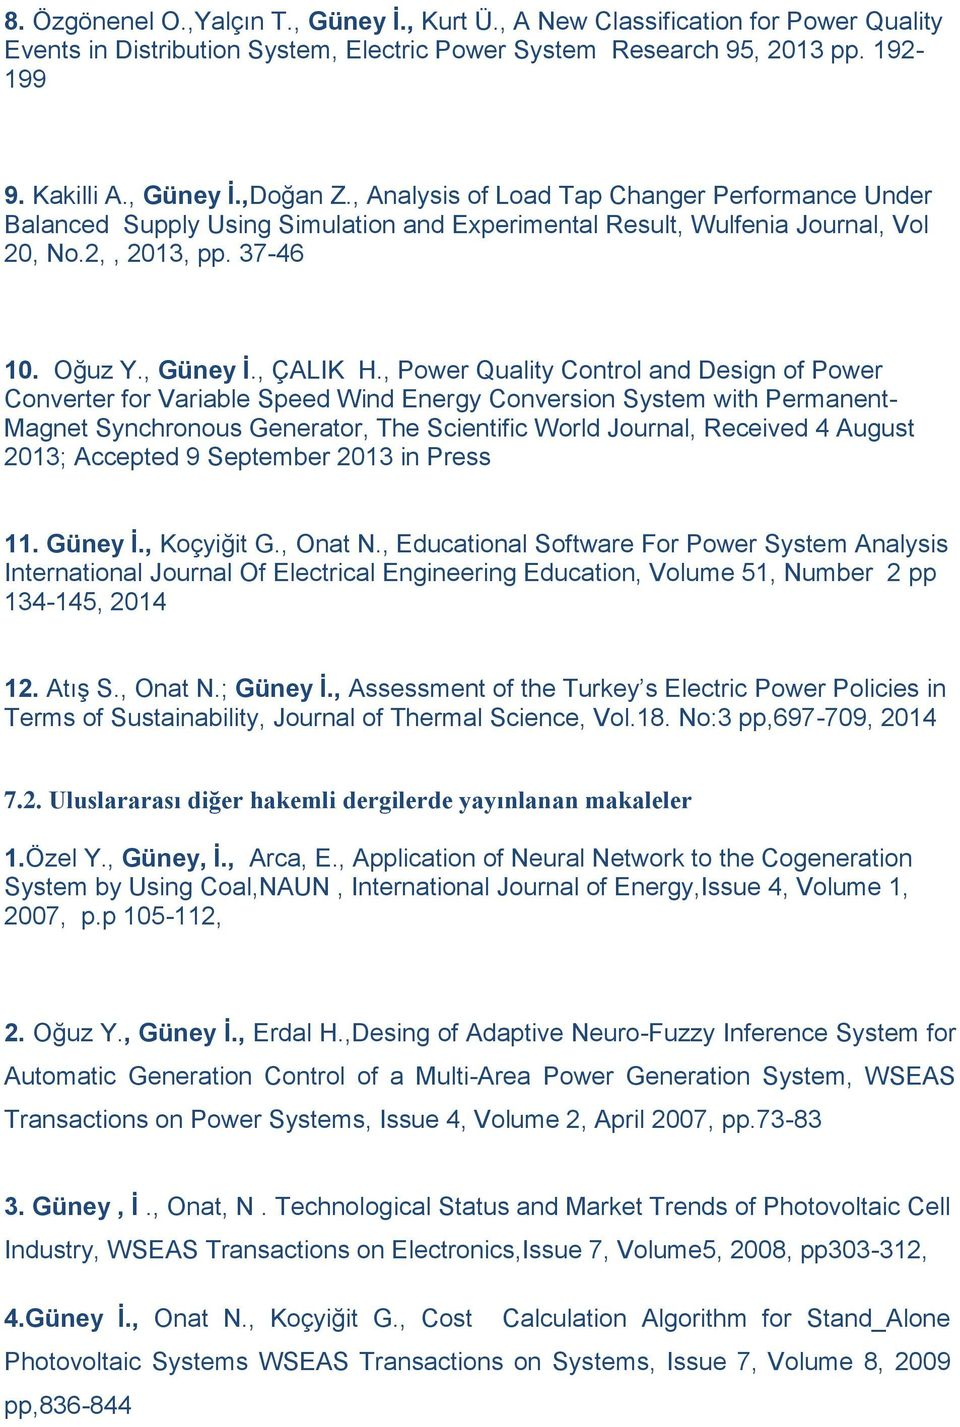 , Power Quality Control and Design of Power Converter for Variable Speed Wind Energy Conversion System with Permanent- Magnet Synchronous Generator, The Scientific World Journal, Received 4 August